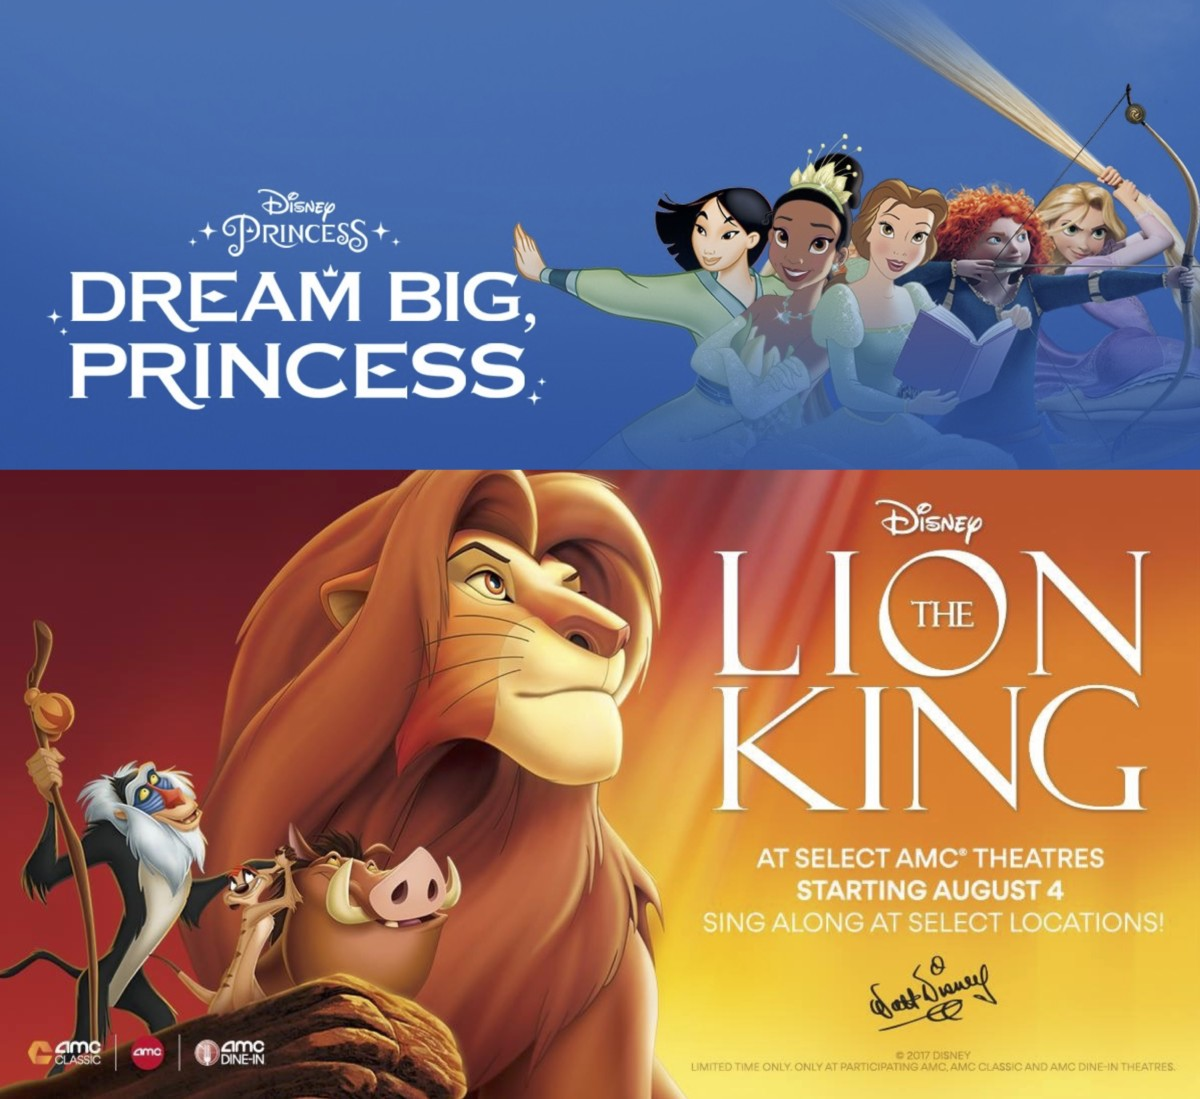 TMSM Explains: Why Disney Princess And Lion King Fans Need to Go to AMC Theaters! 10